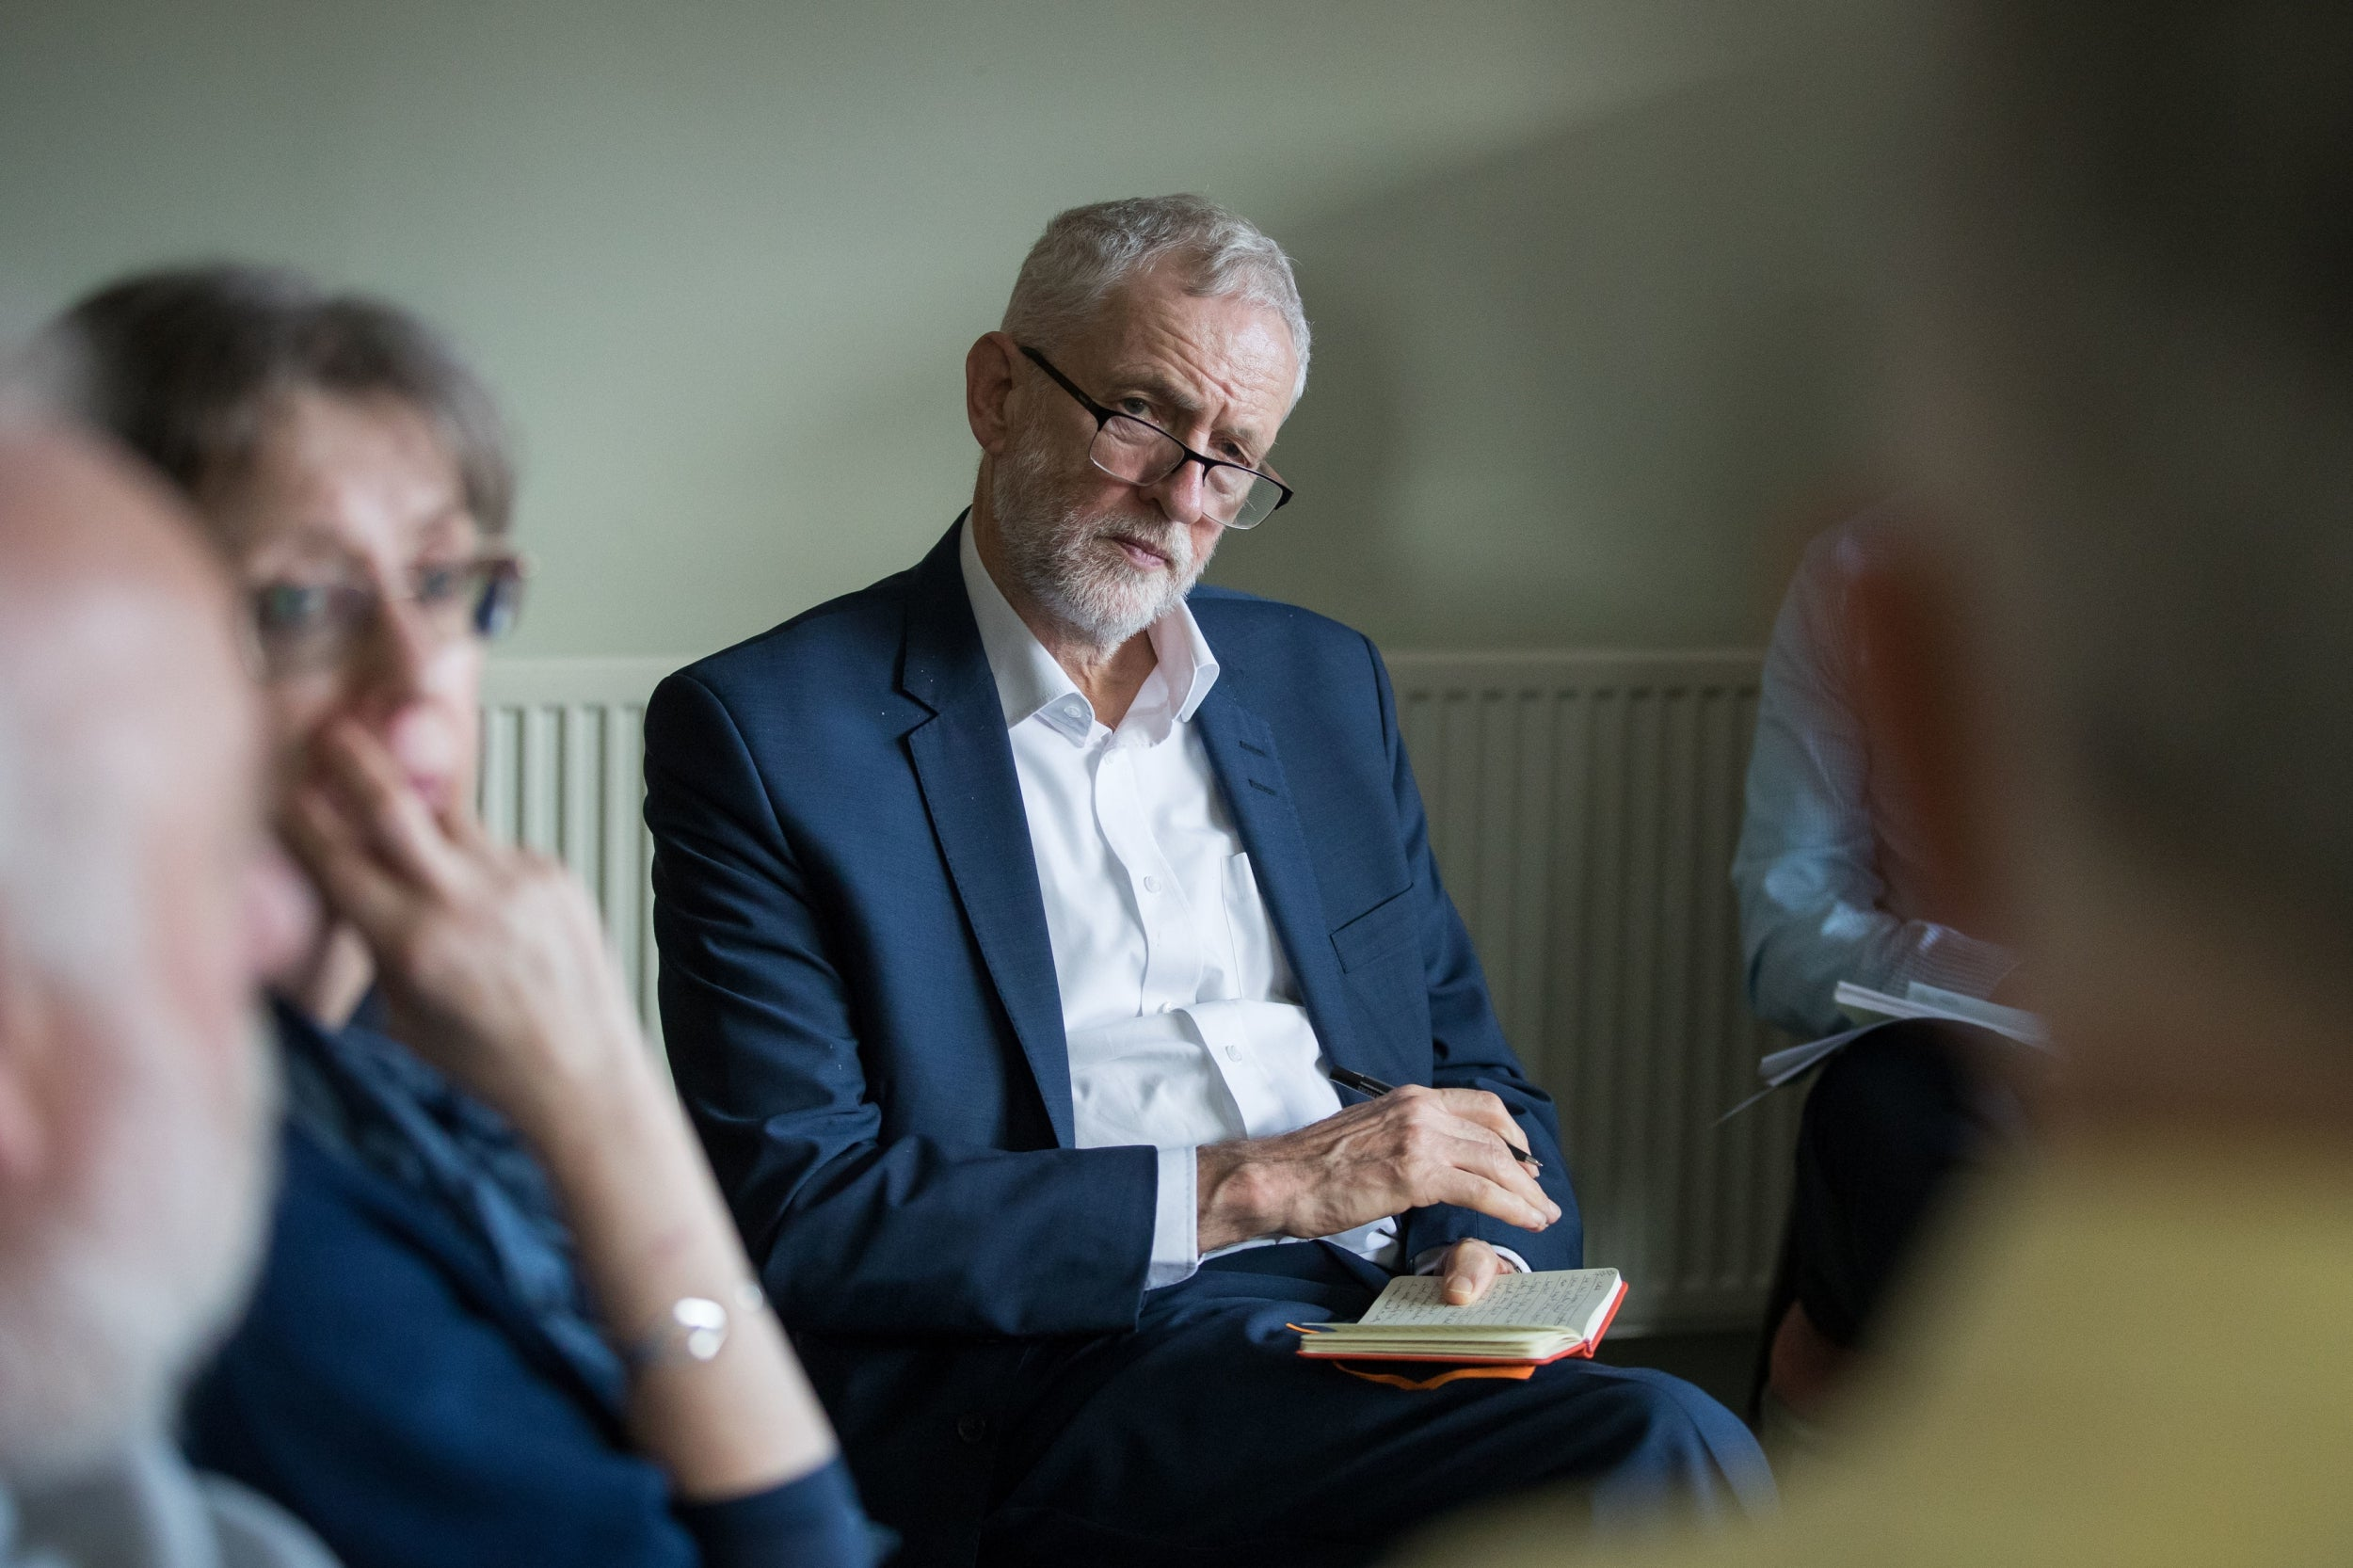 Brexit: Jeremy Corbyn to visit Brussels for talks with EU negotiators